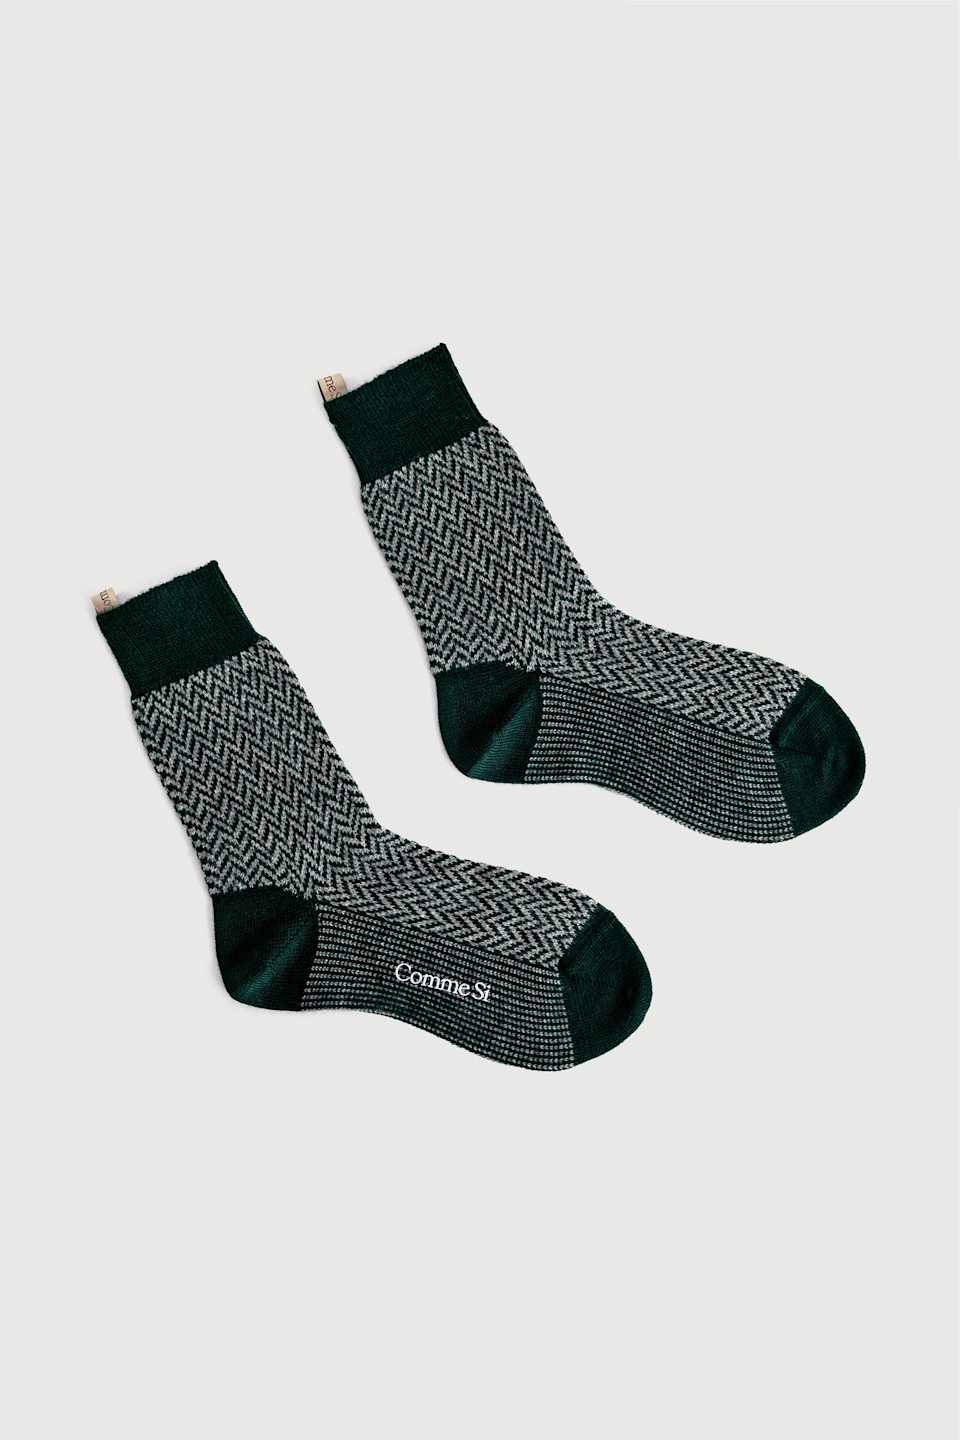 "$55 might seem like a lot to spend on socks, but for your fashion friend, a pair of Comme Si socks will be money well spent.<br><br><strong>Comme Si</strong> The Diane Sock, $, available at <a href=""https://go.skimresources.com/?id=30283X879131&url=https%3A%2F%2Fwww.commesi.com%2Fproducts%2Fthe-diane-sock"" rel=""nofollow noopener"" target=""_blank"" data-ylk=""slk:Comme Si"" class=""link rapid-noclick-resp"">Comme Si</a>"